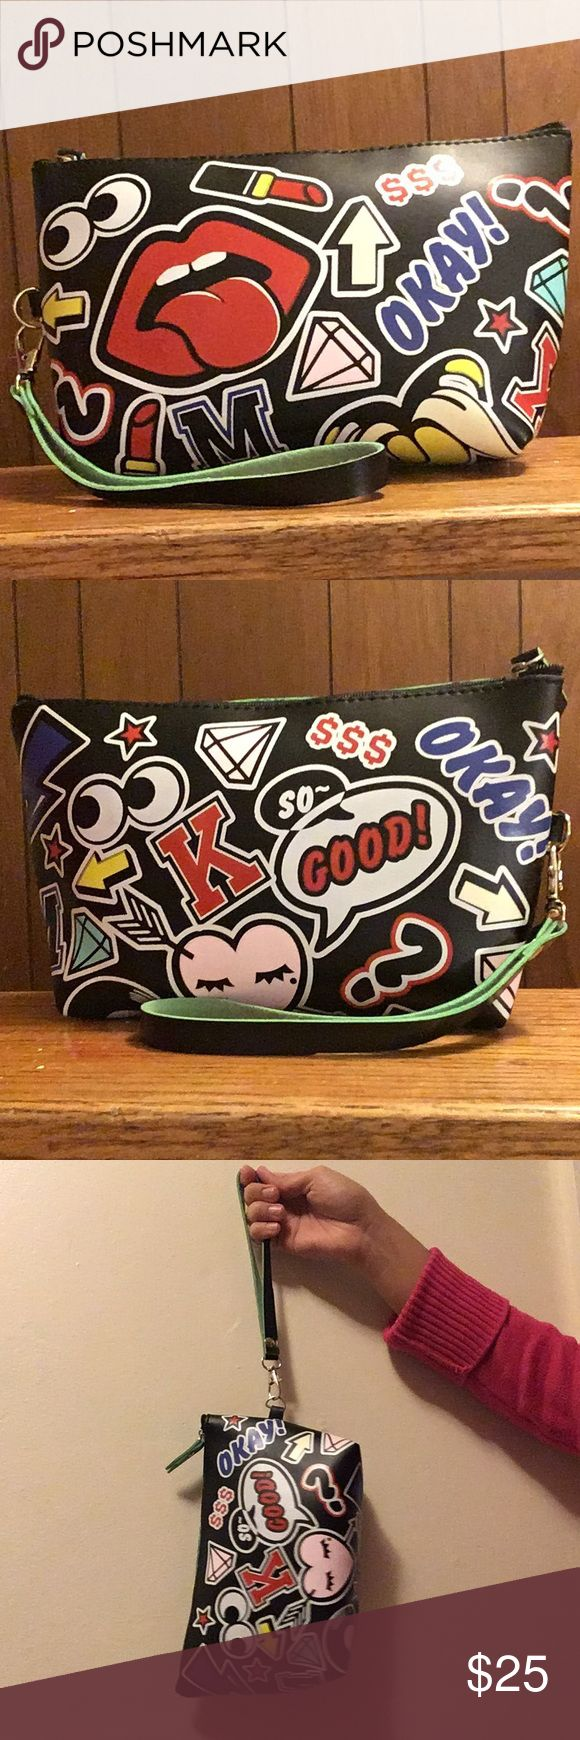 Graffiti cartoon make up bag Graffiti cartoon make up bag / clutch . New in package. Super cute, the hand strap is removable. Bags Mini Bags